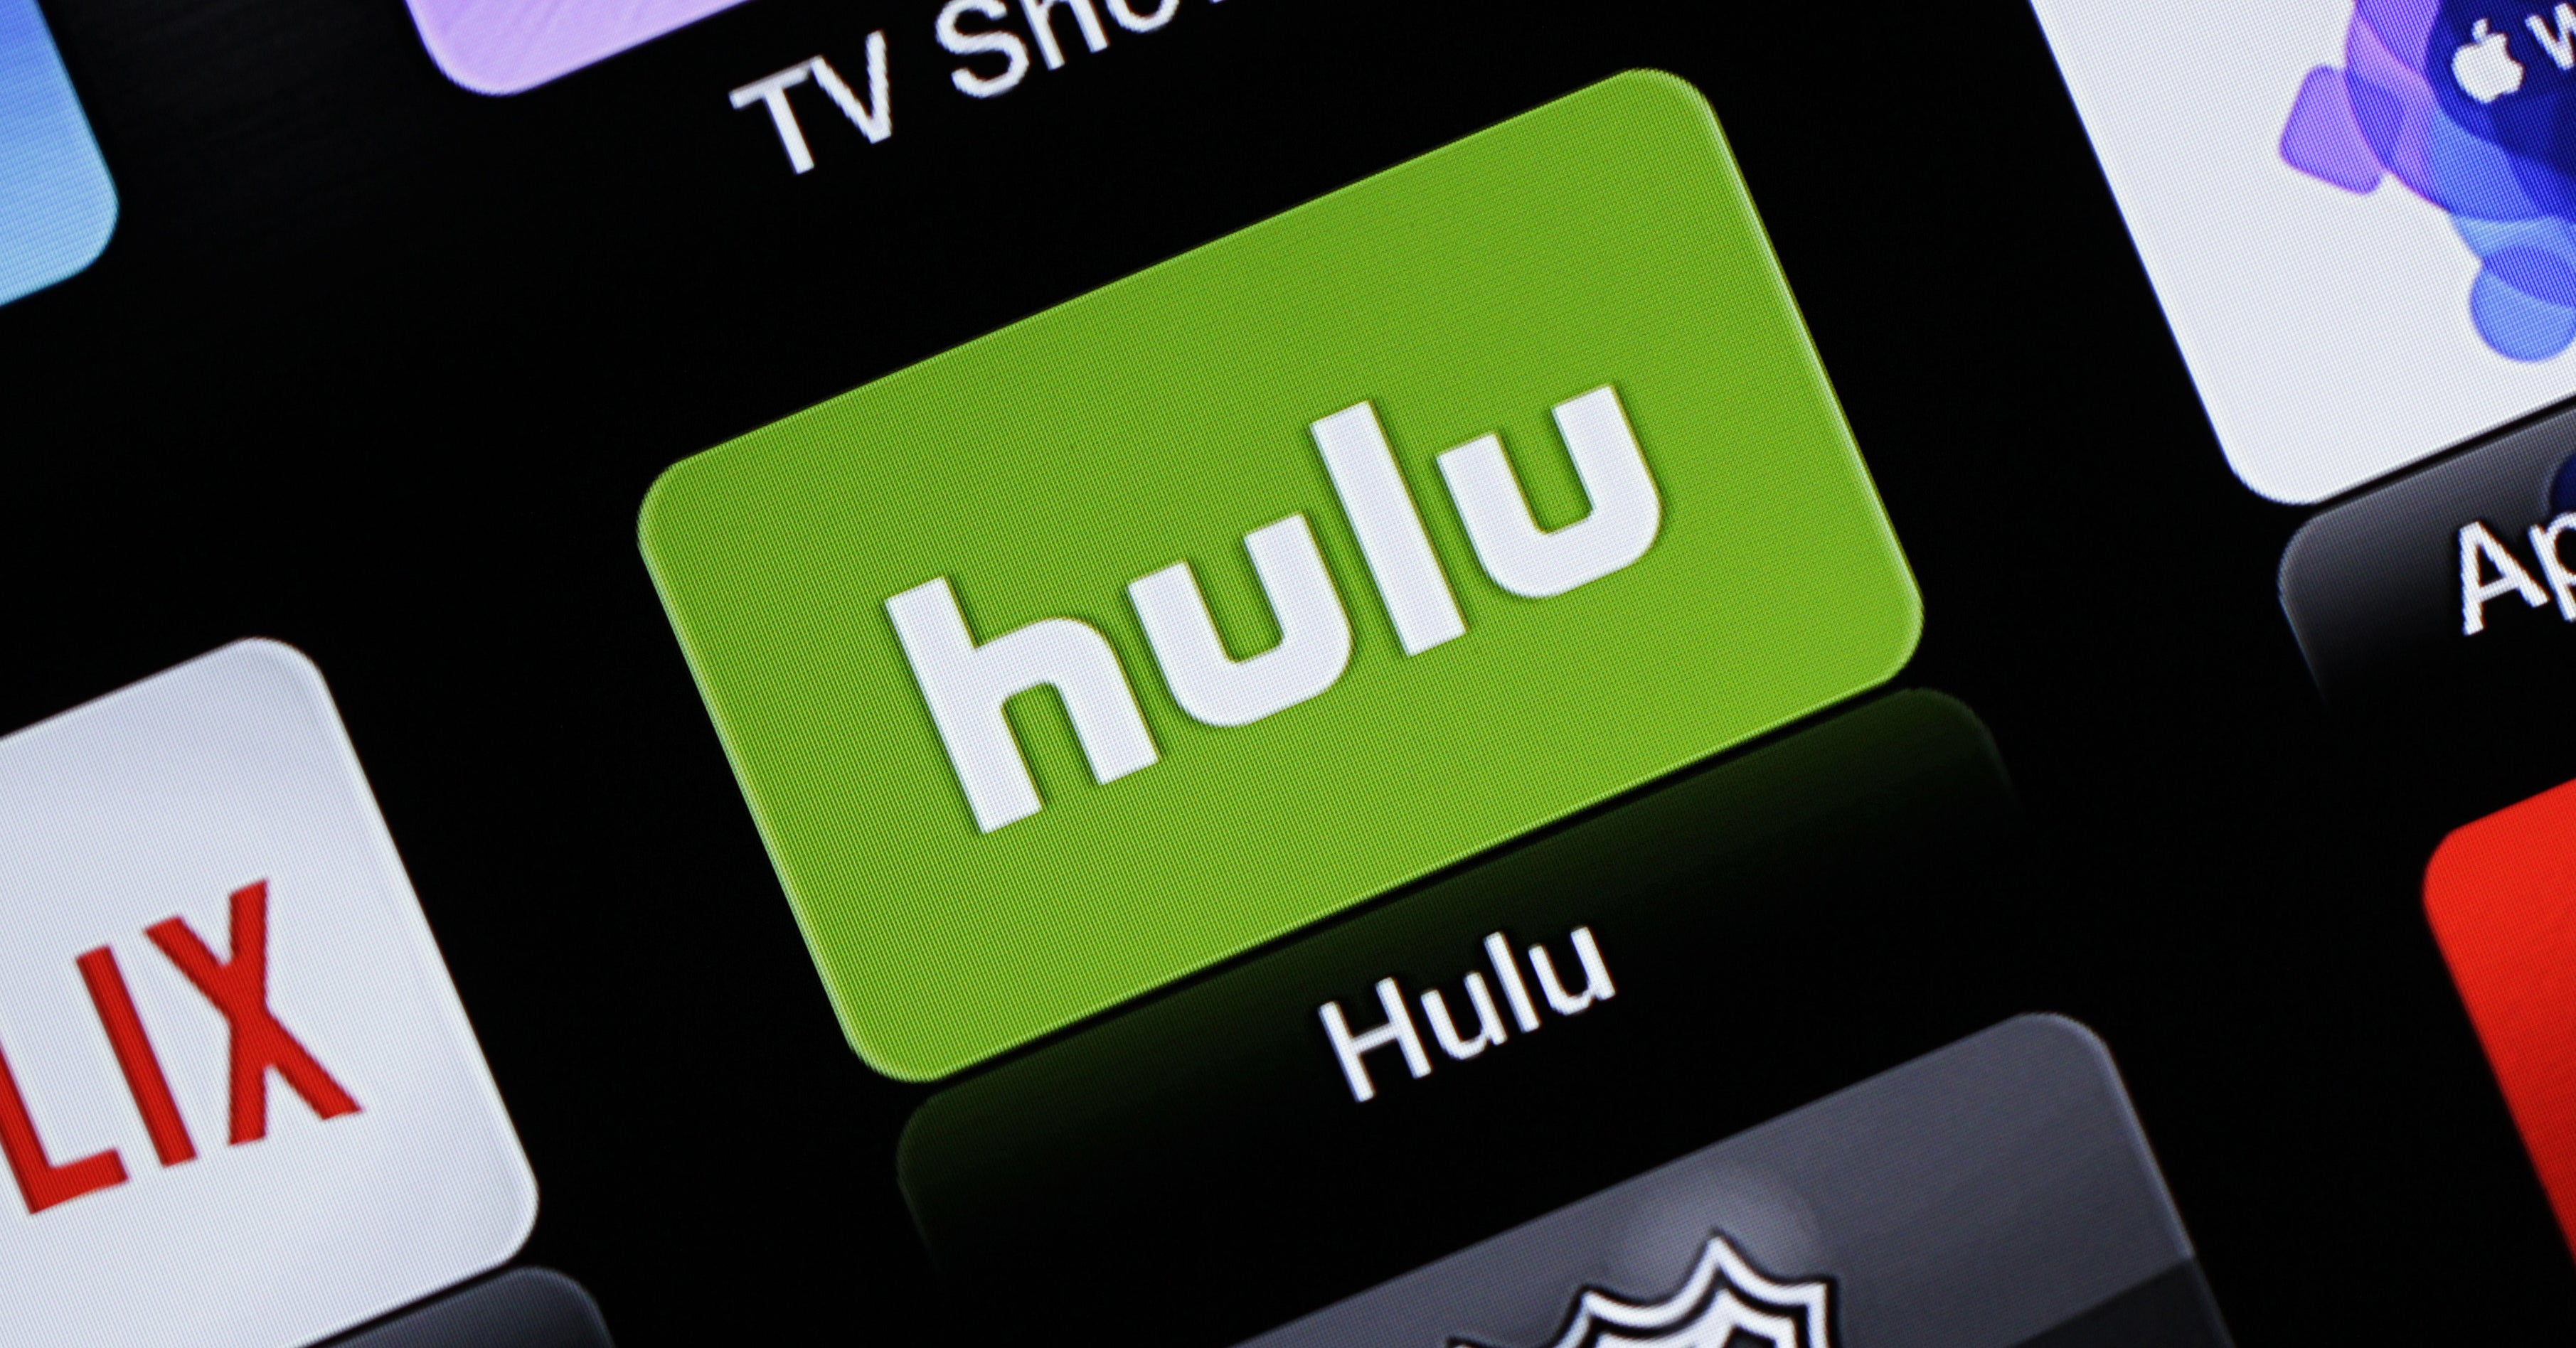 Hulu Drops The Price Of Its Basic Plan Just After Netflix Announced